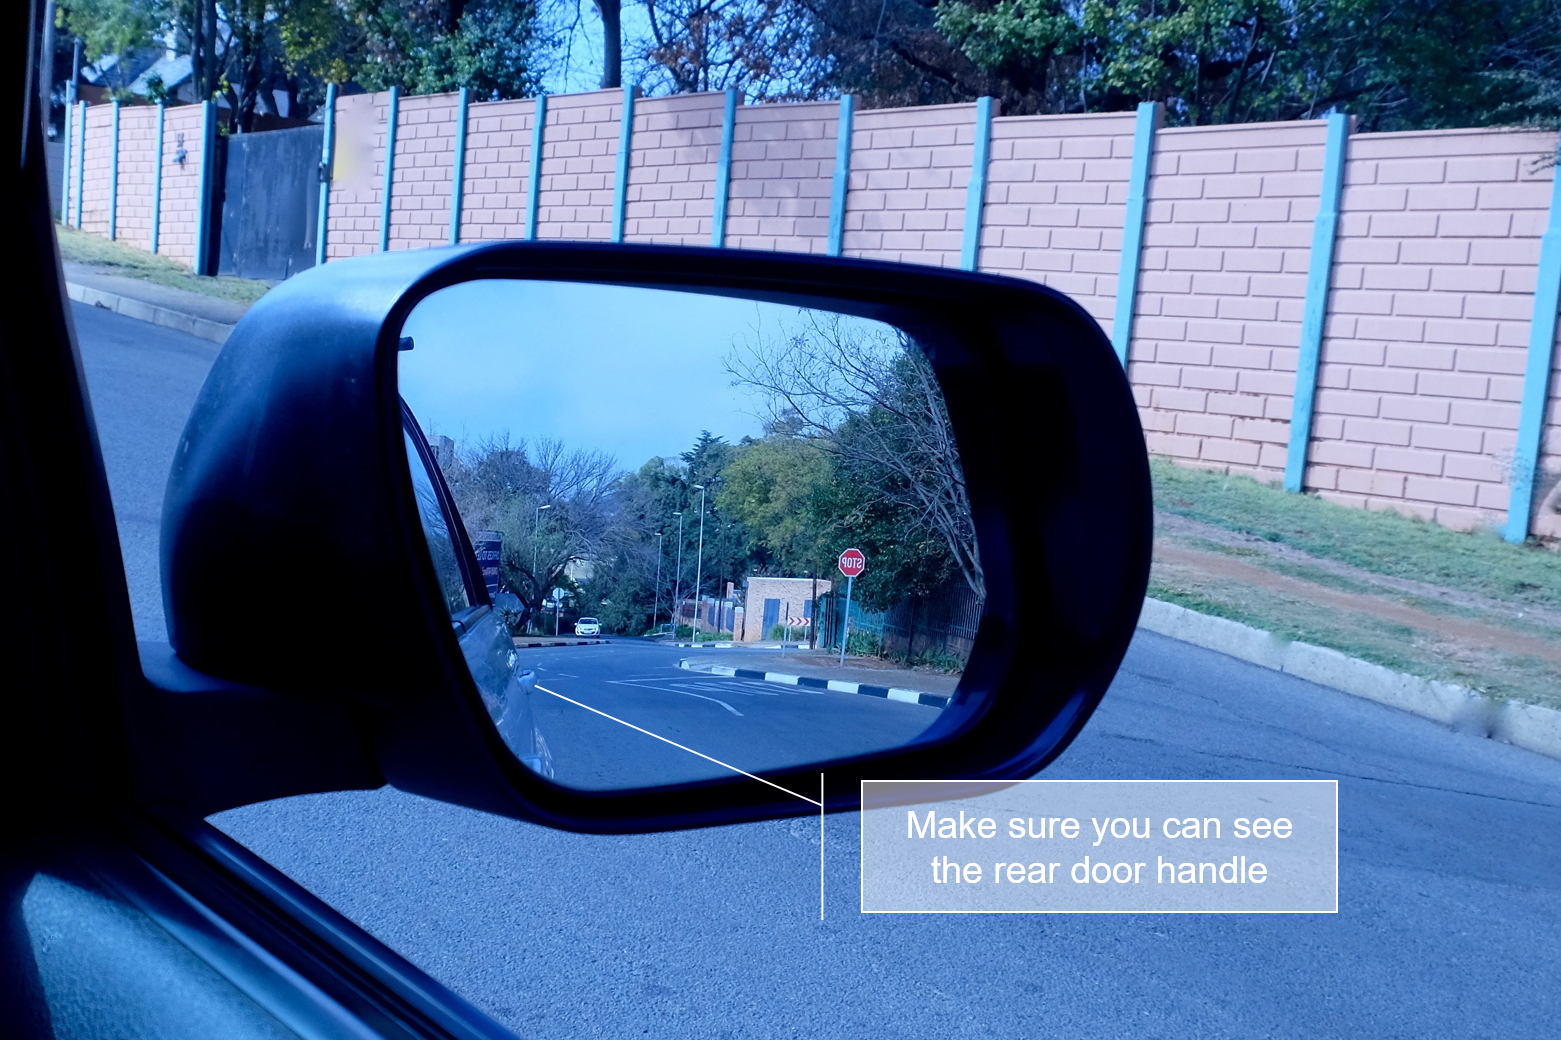 Tips for driving safely | Suzuki